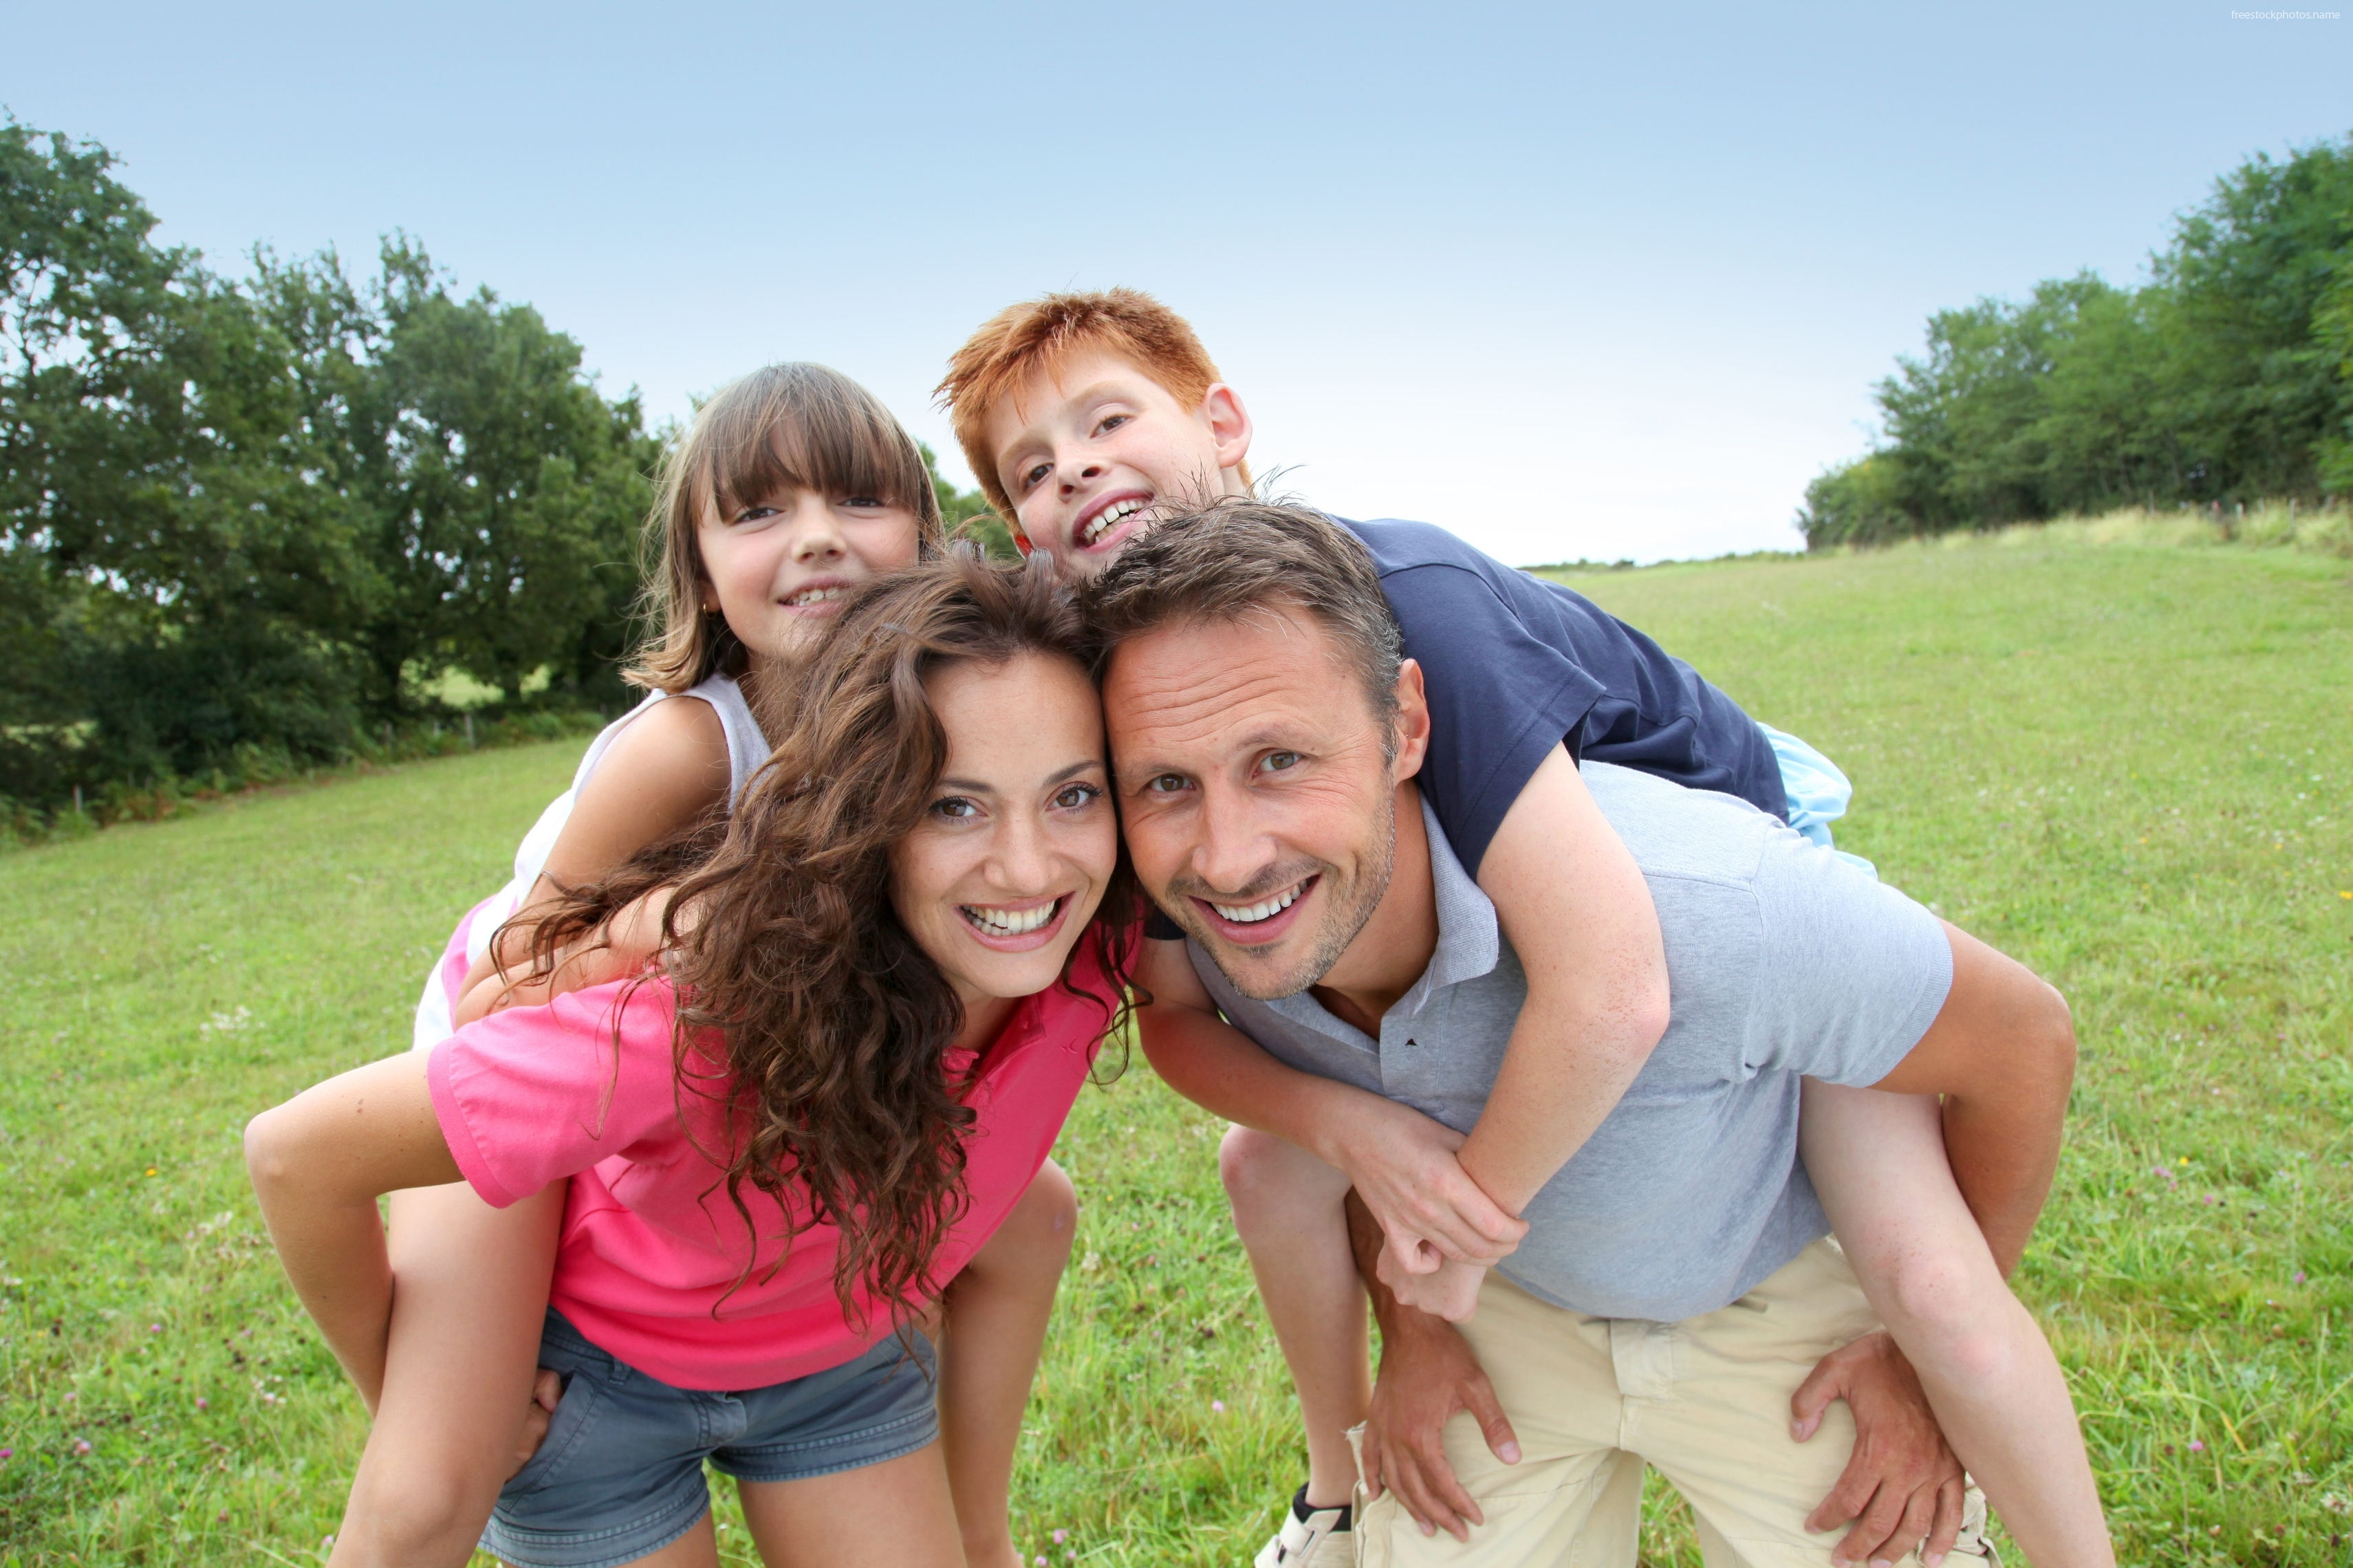 Download Stock Photos of family health images photography Royalty 3421x2280